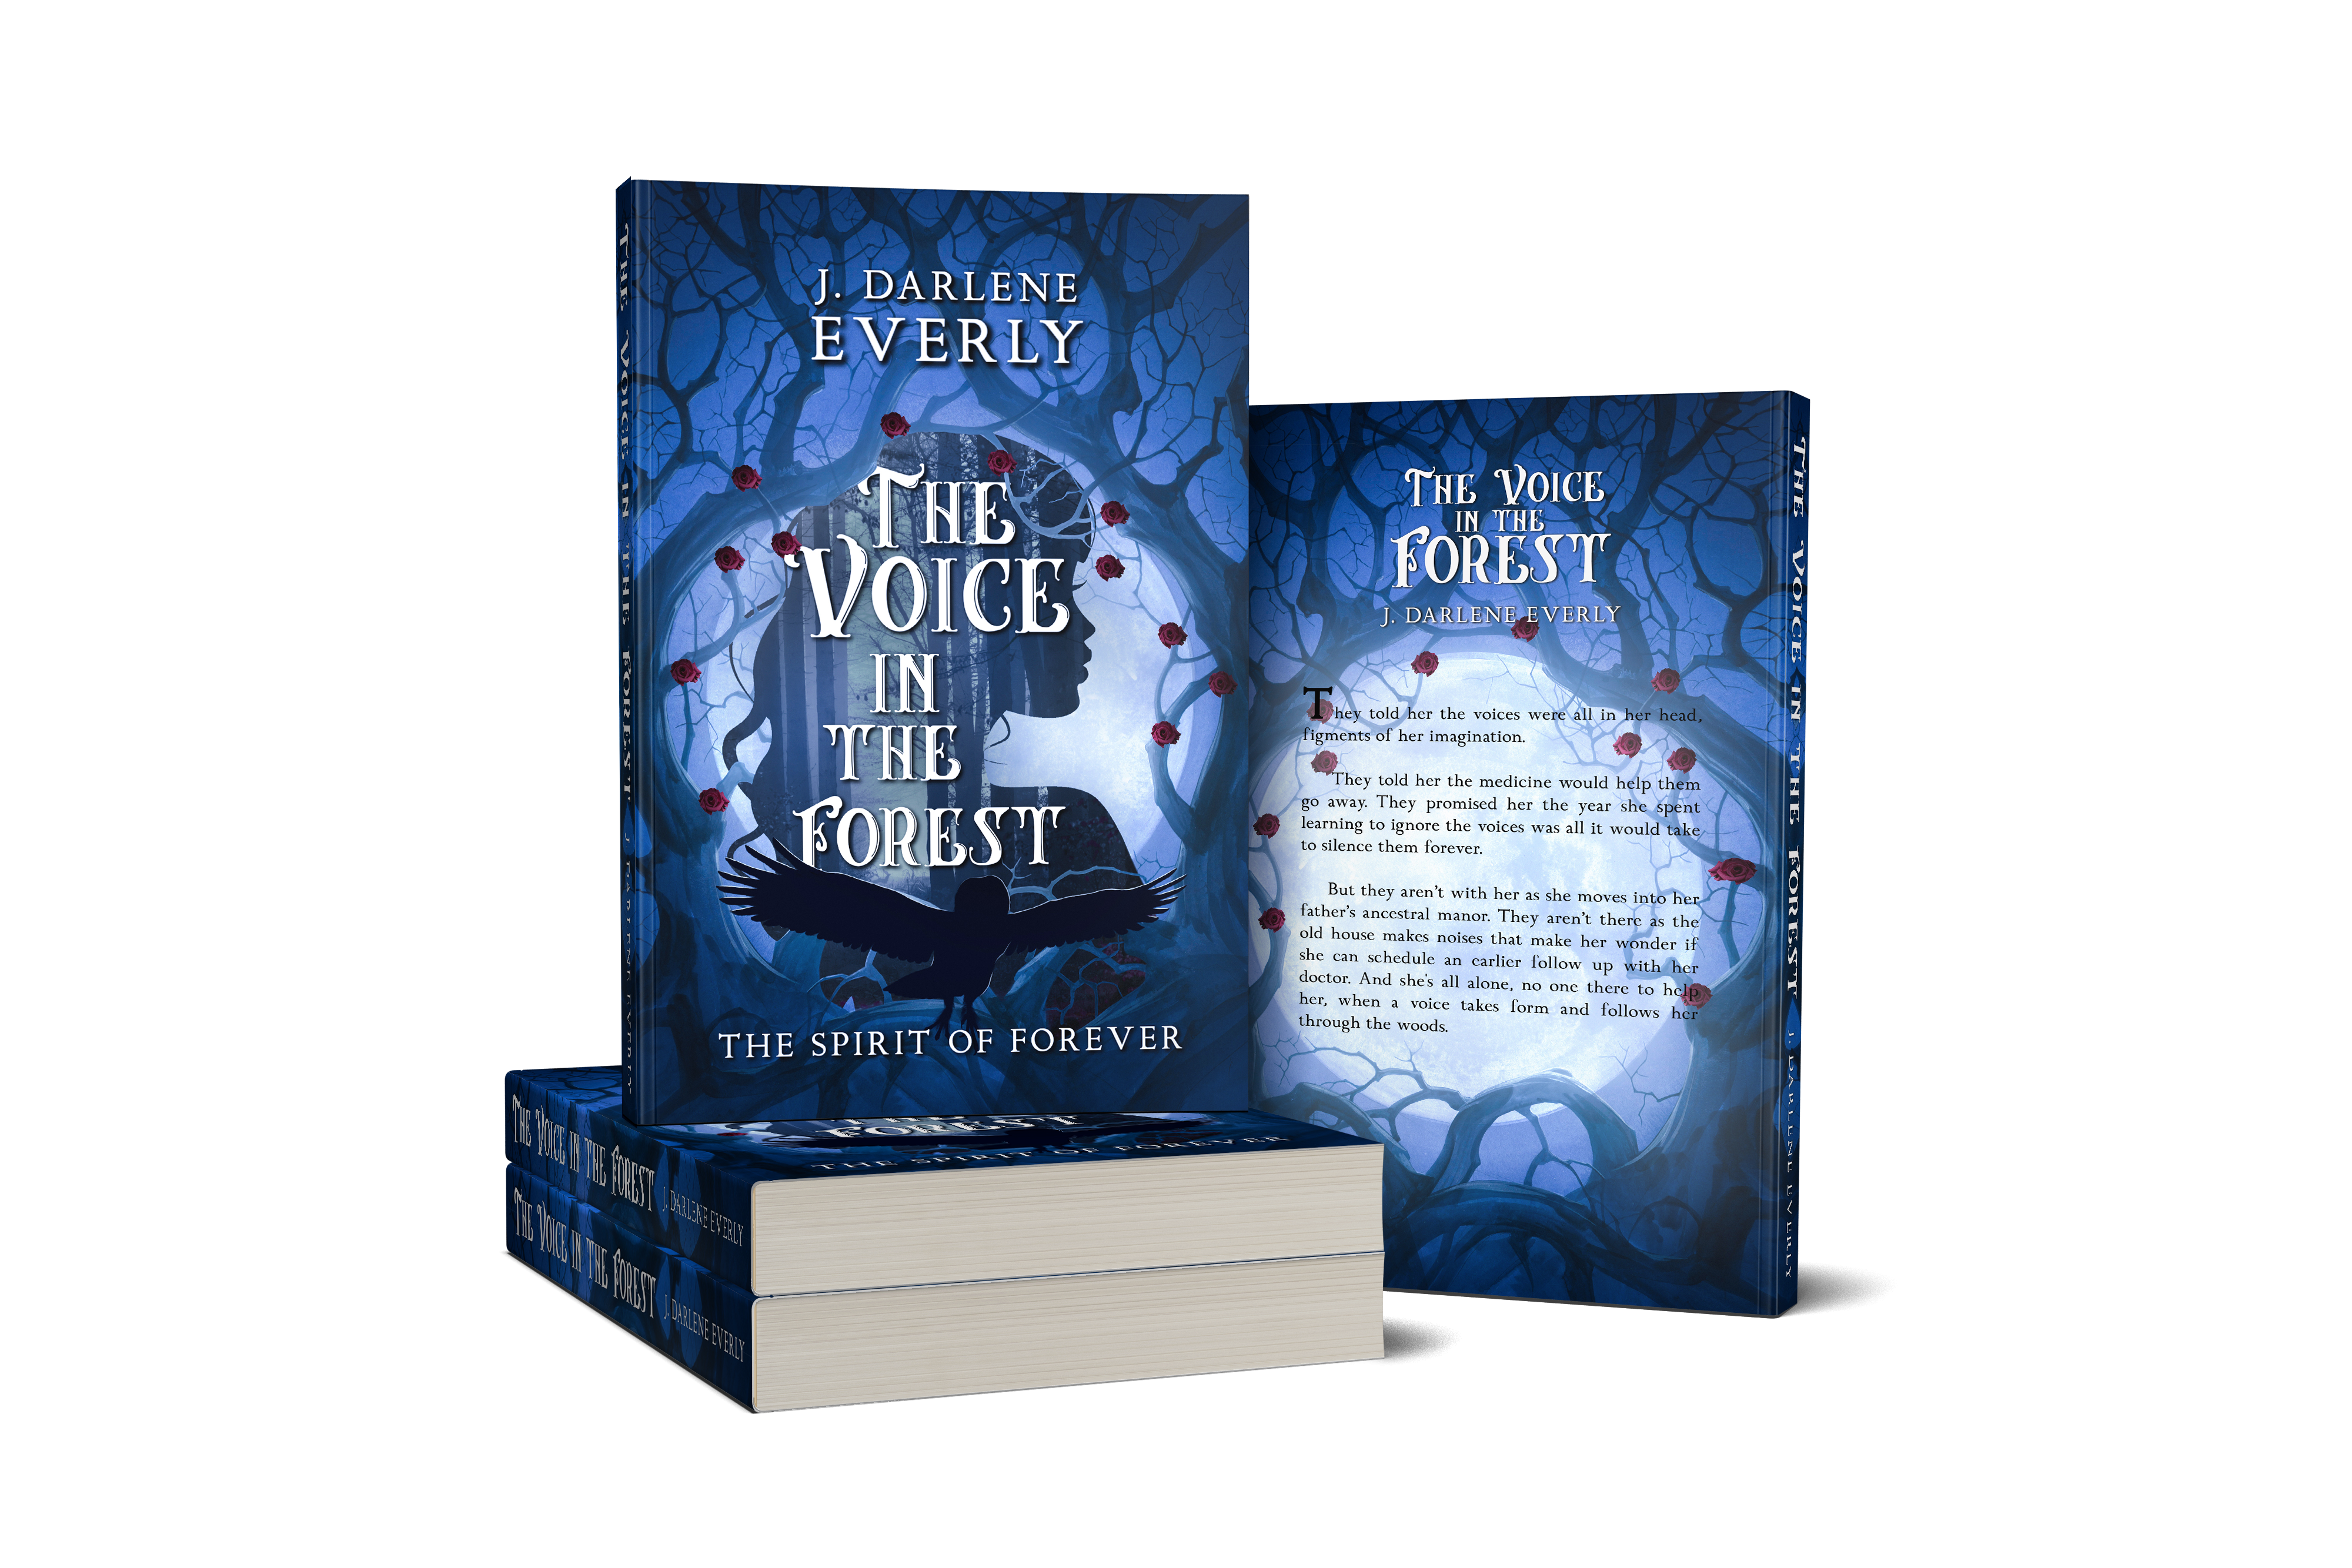 A surprise coming soon for the newsletter and chapter 15 of the voice in the forest